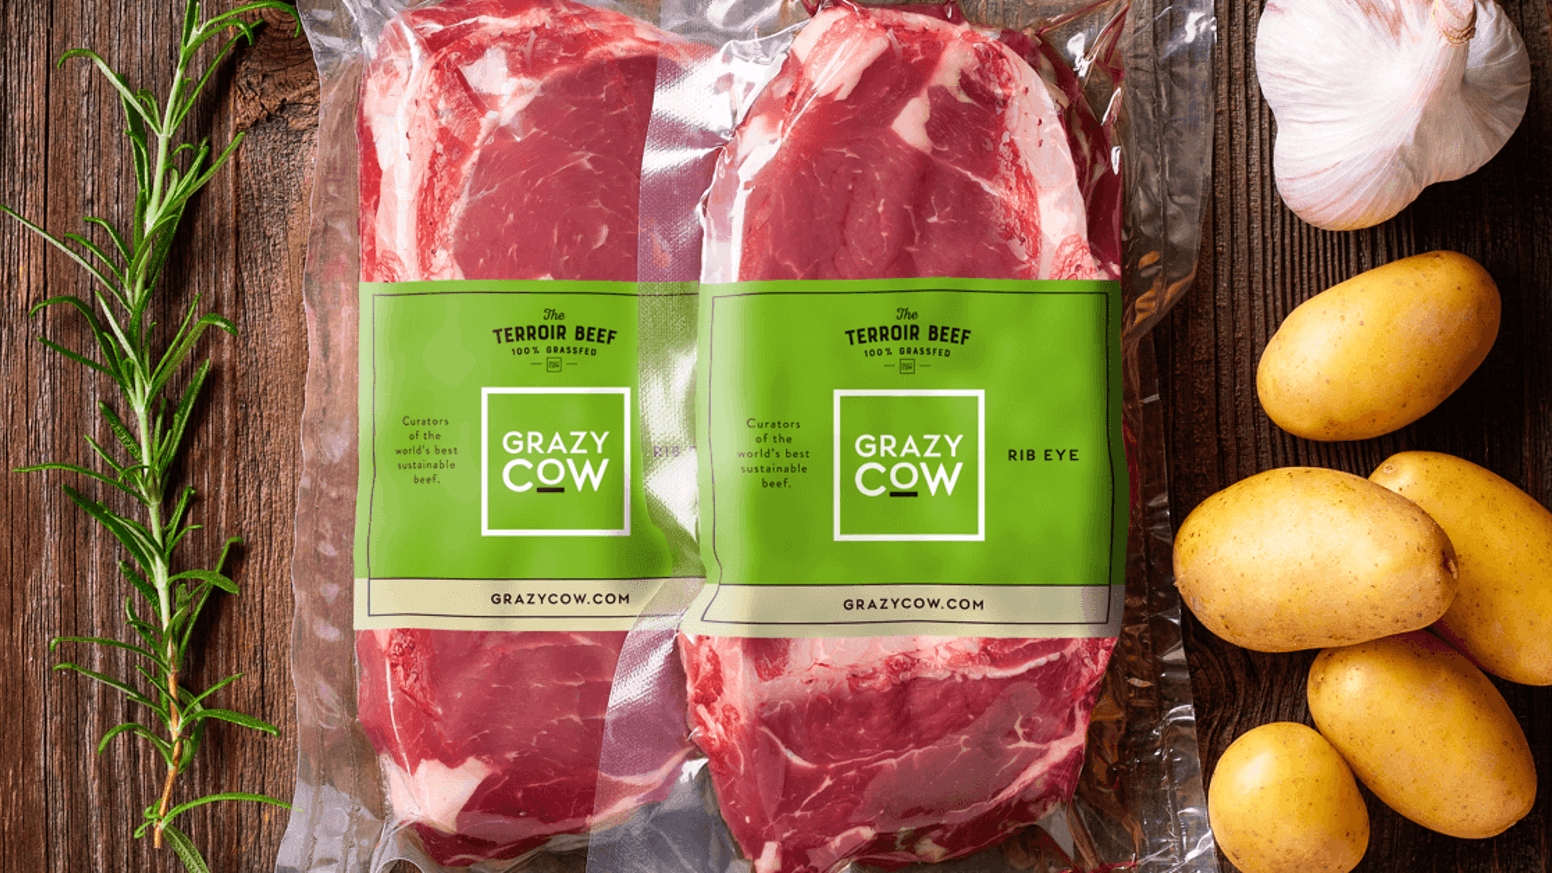 Grazy Box – Tasty and healthy 100% grass-fed beef.